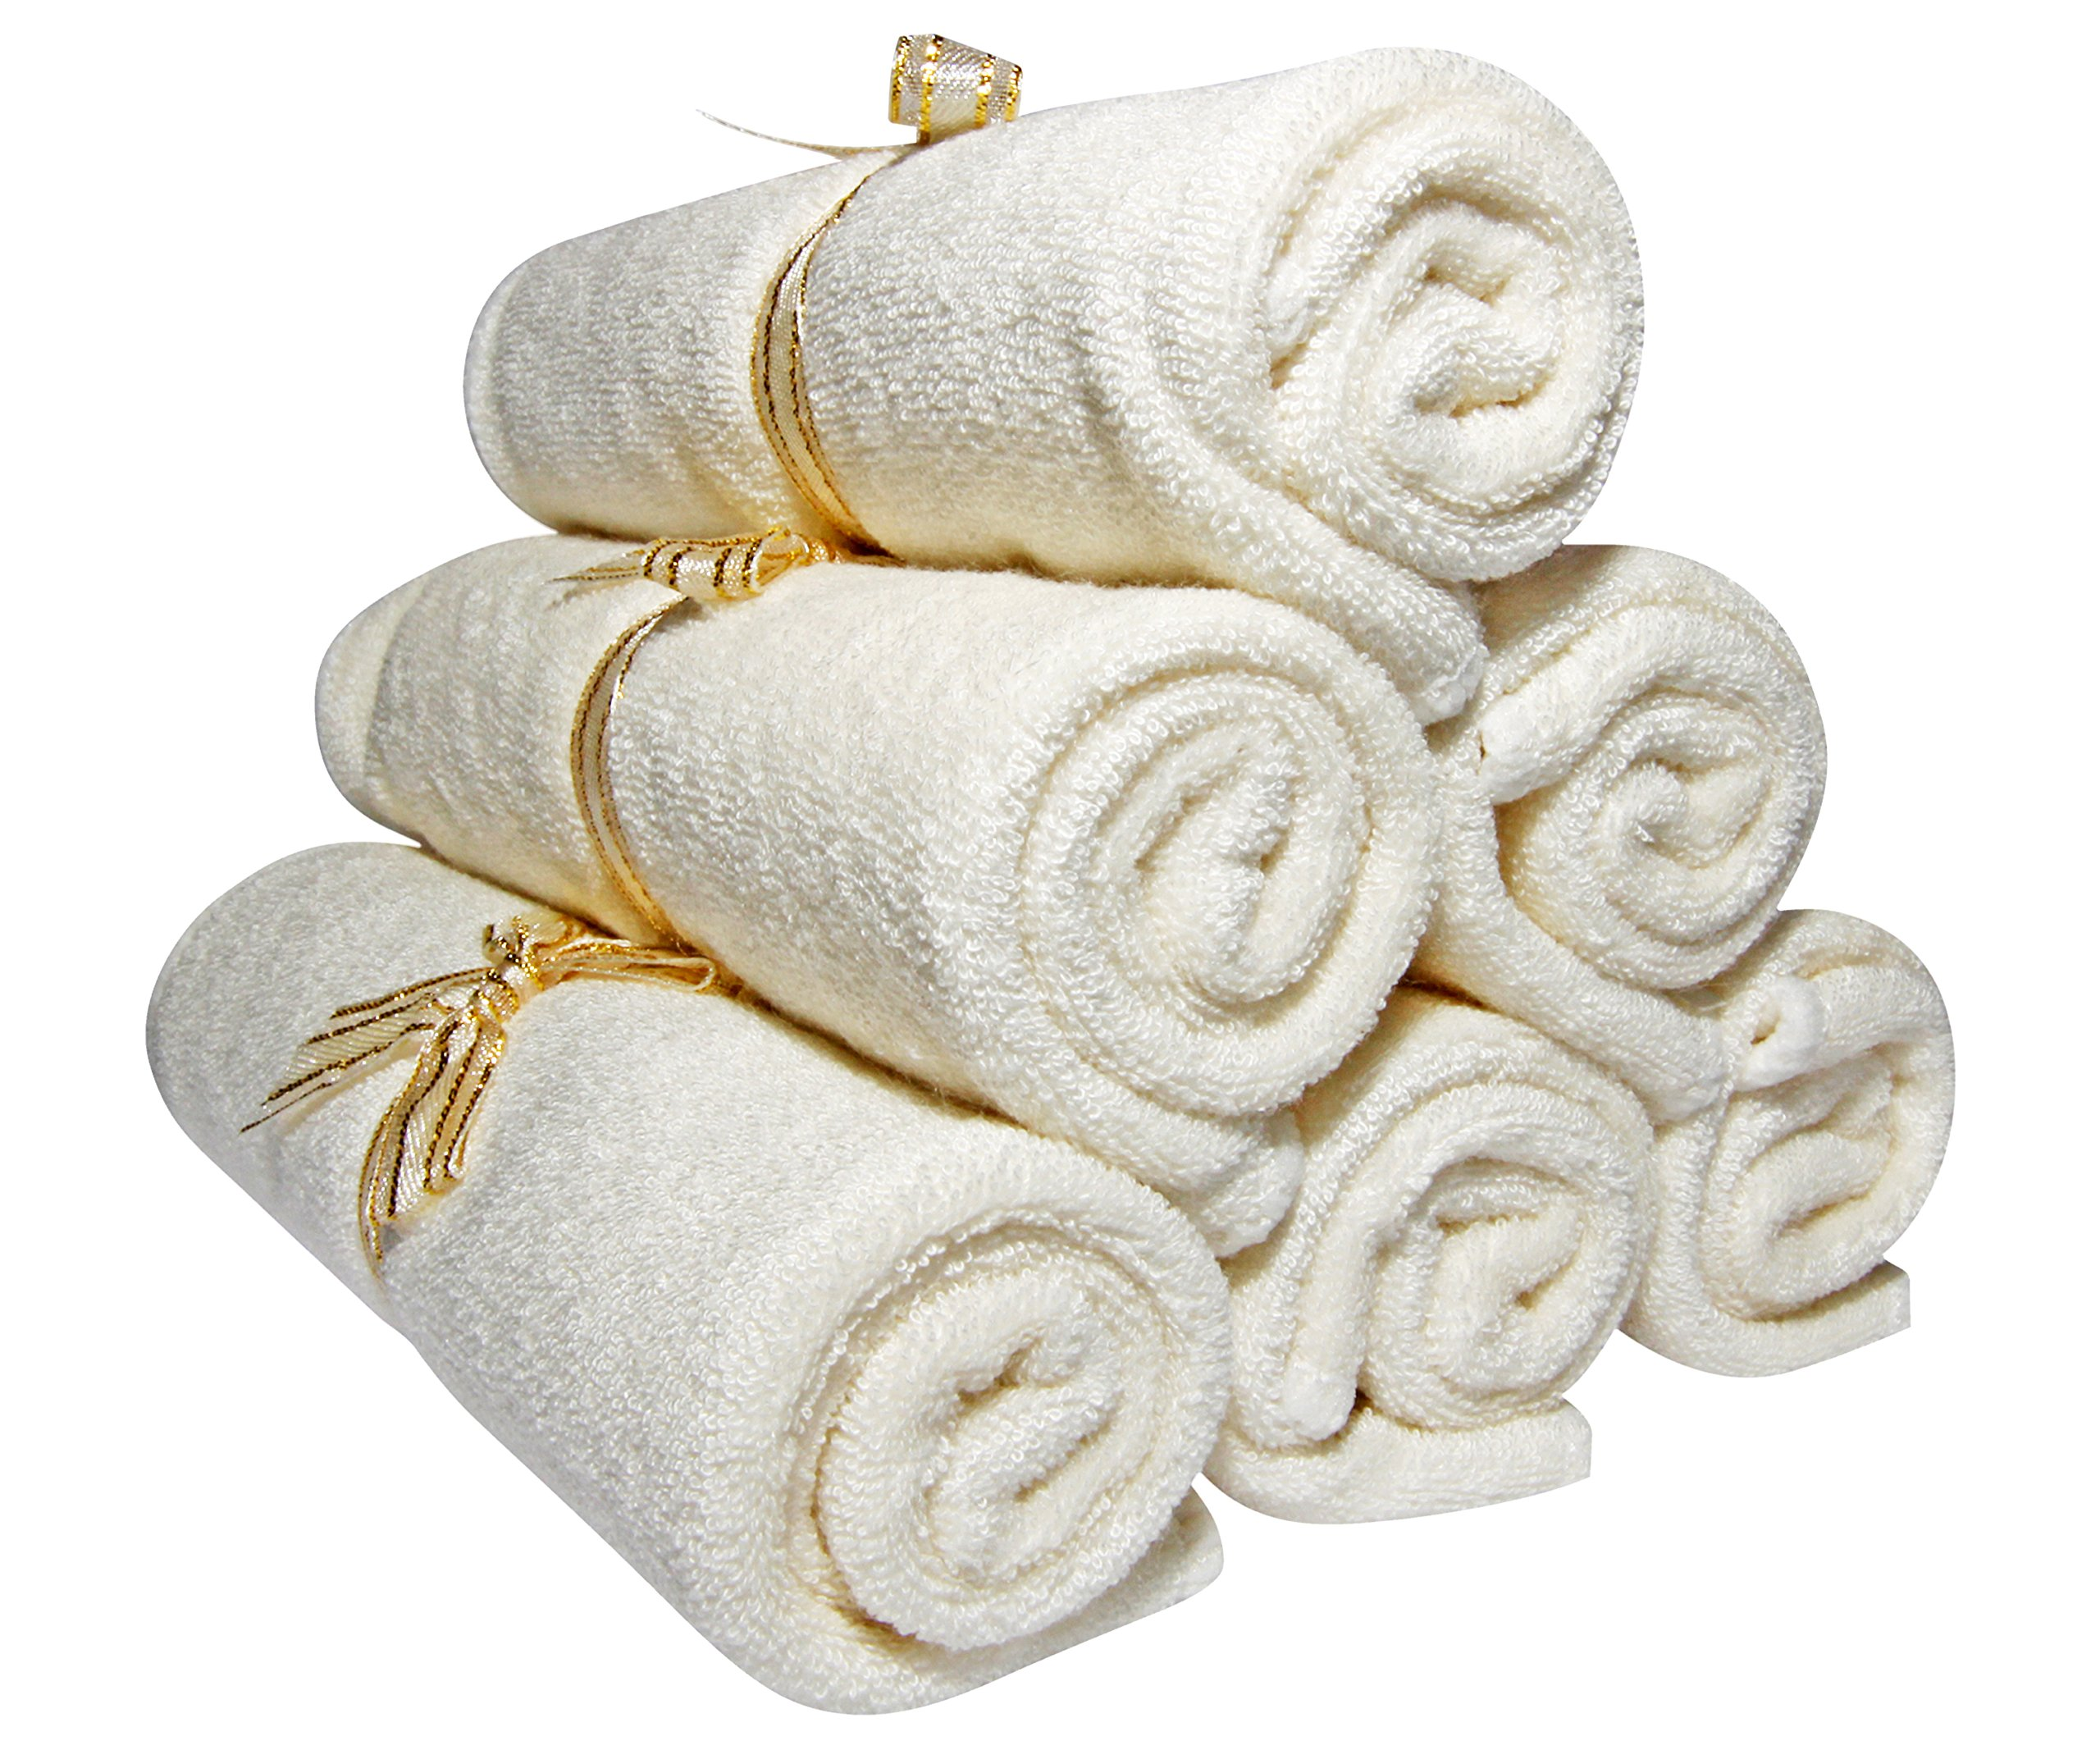 Baby Washcloths - Organic Bamboo, Luxury 2-ply washcloth. Suitable for Eczema. Best for Baby Shower/ Registry Gifts. All Natural, Safe and Soft Reusable Wipes. 10.6'', 6 pack. Free EBook - SmilingGaia